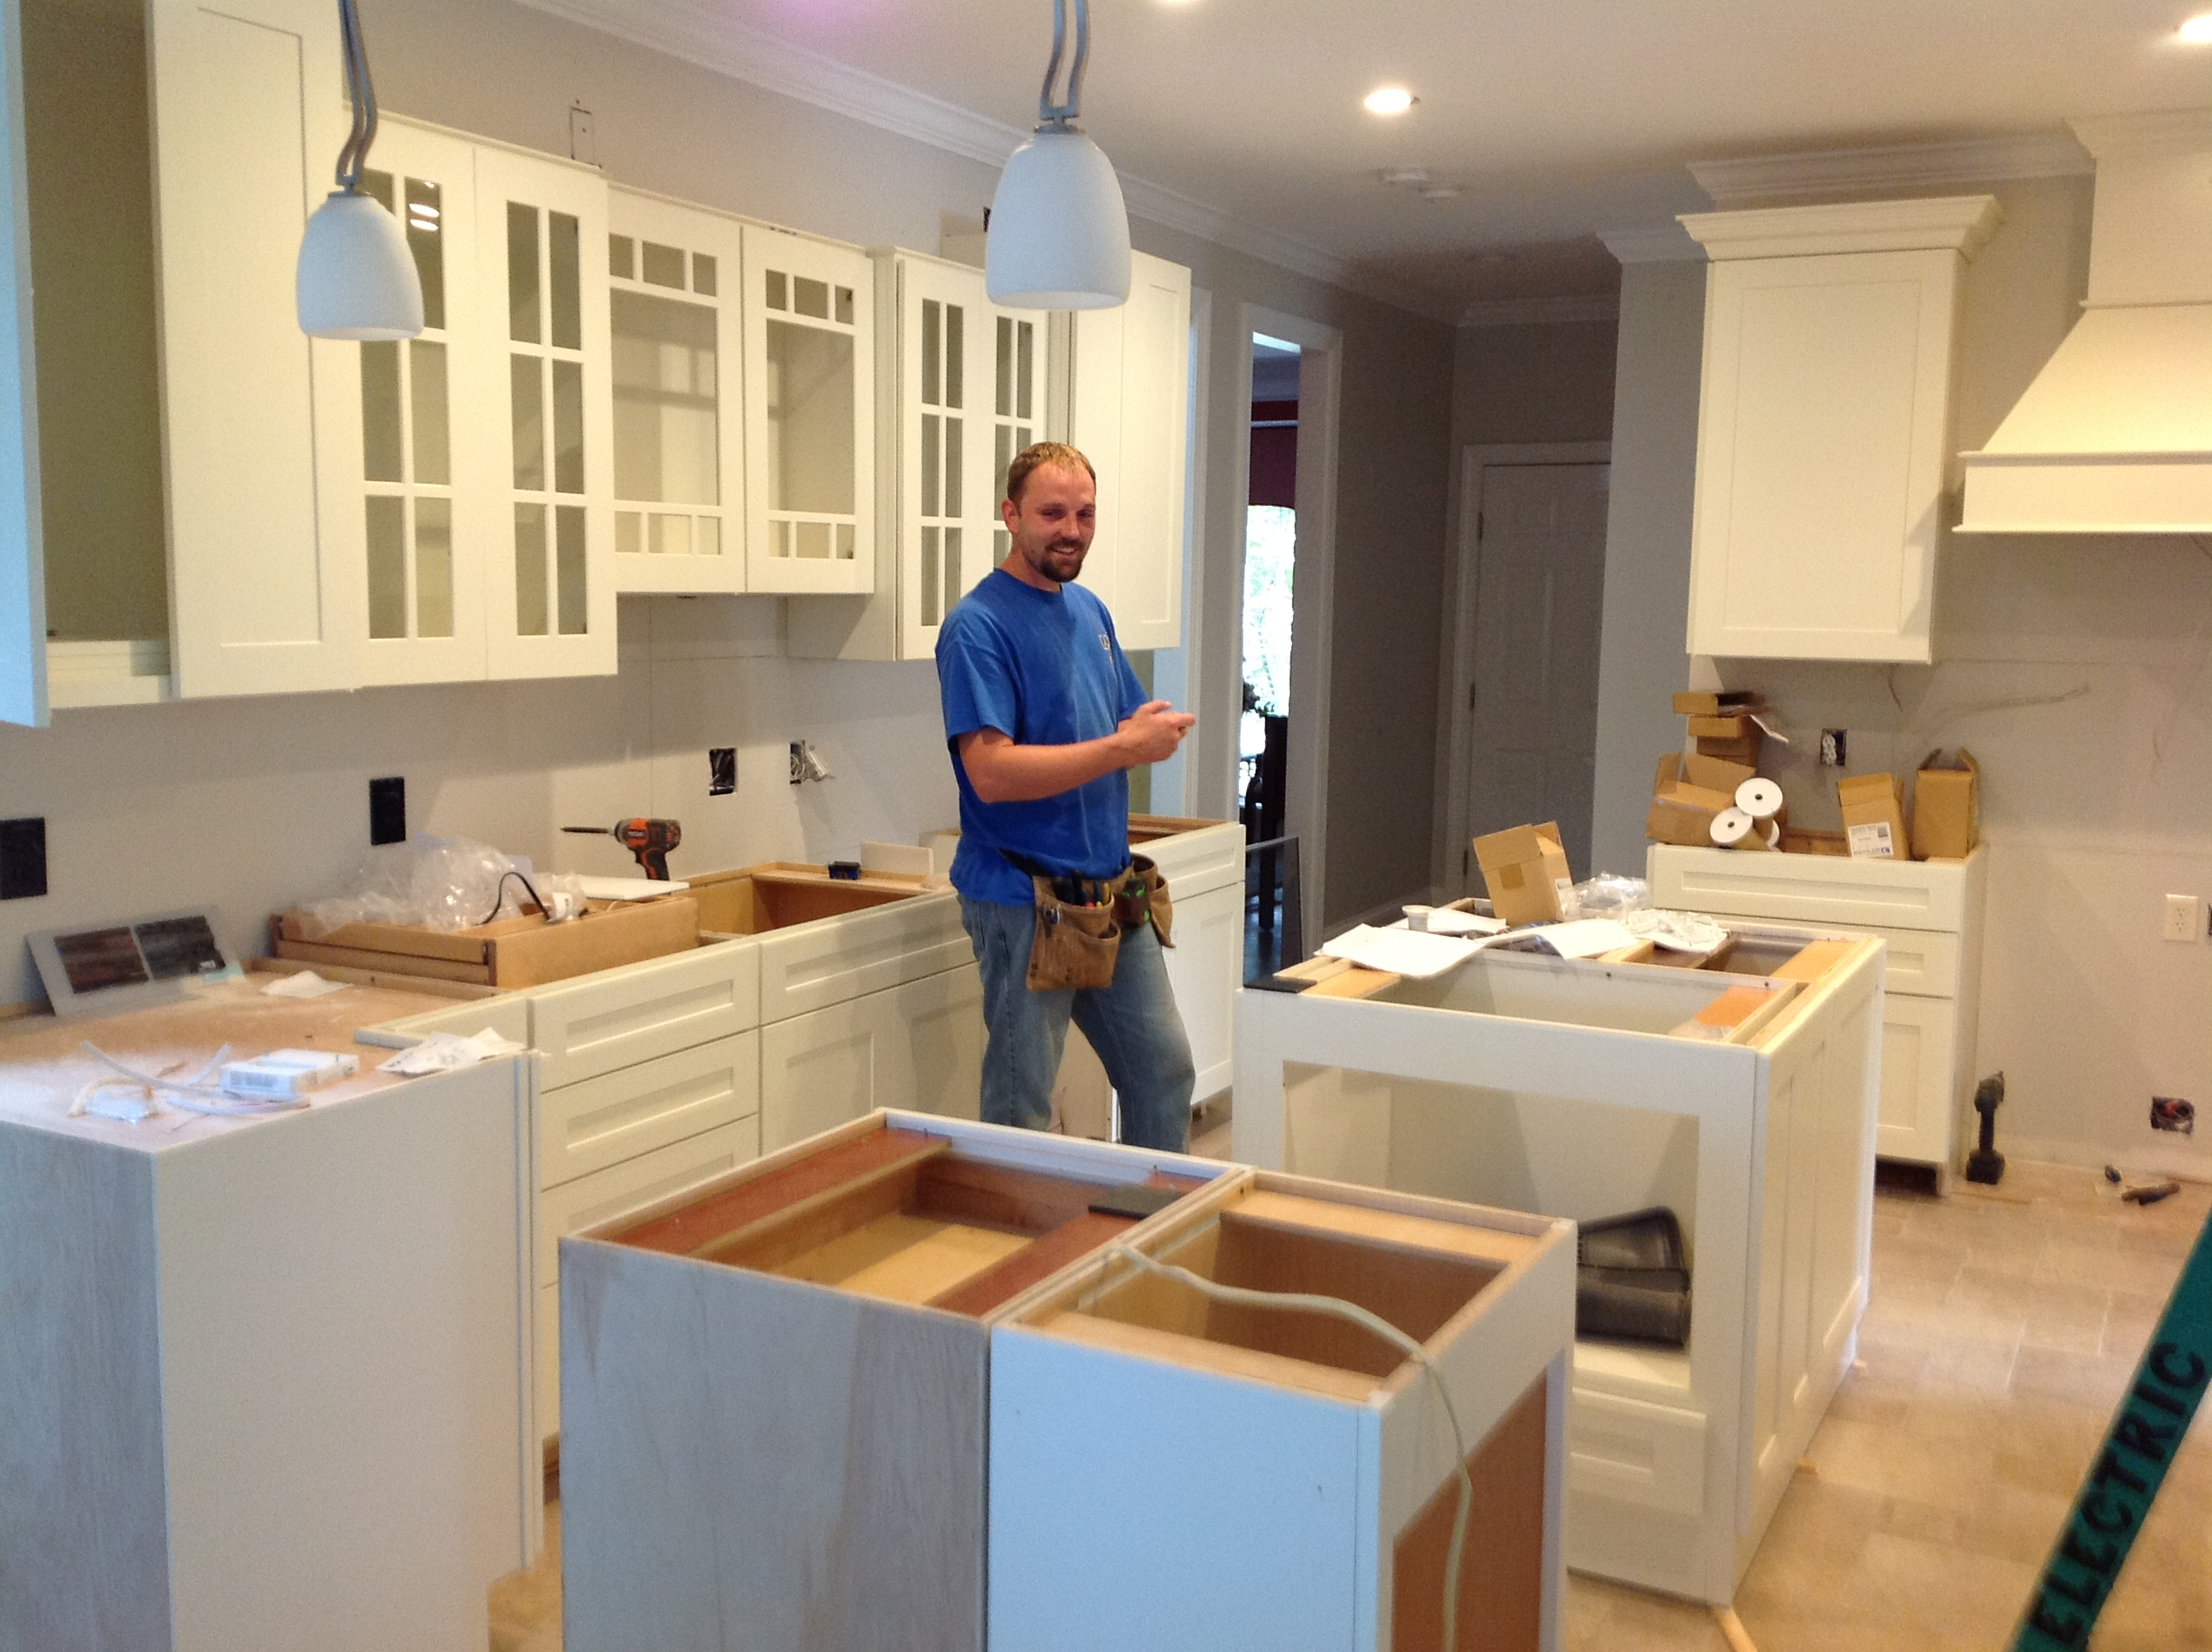 Beautiful White Cabinetry Replaced The Old, Outdated Cabinets And Gave The  Kitchen Remodel On U201c